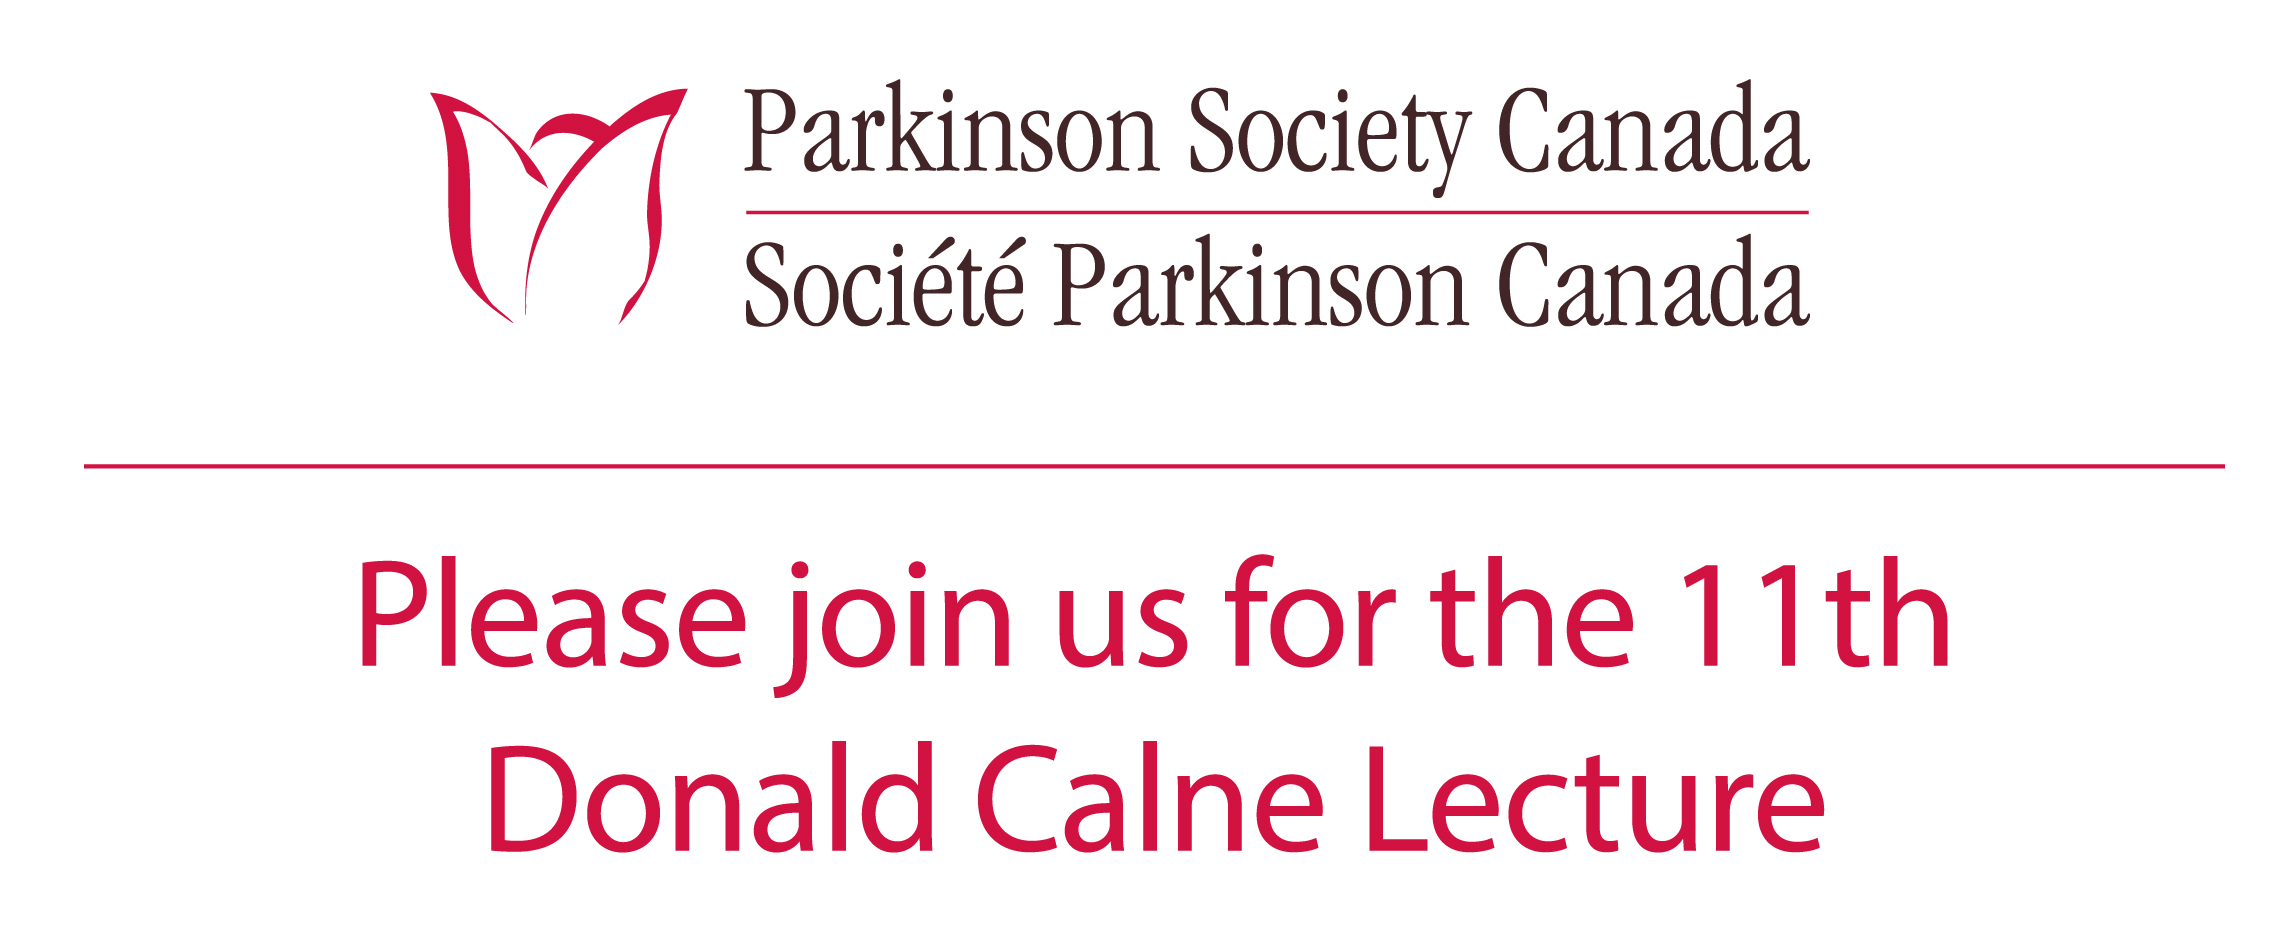 Donald Calne Lecture - May 26